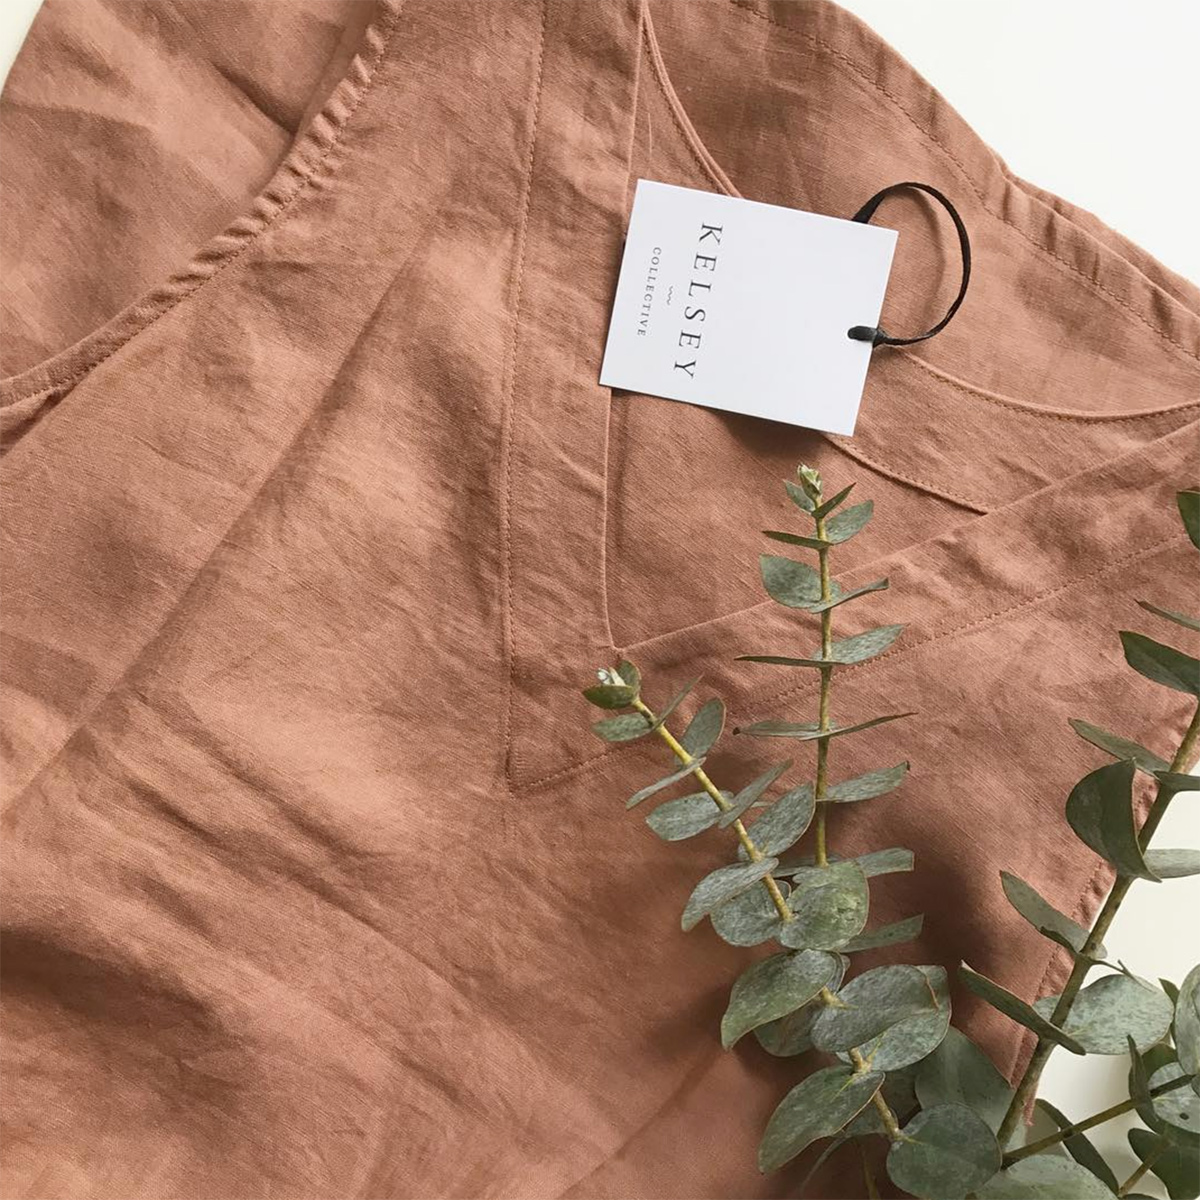 kelseycollective-garment-swingtag